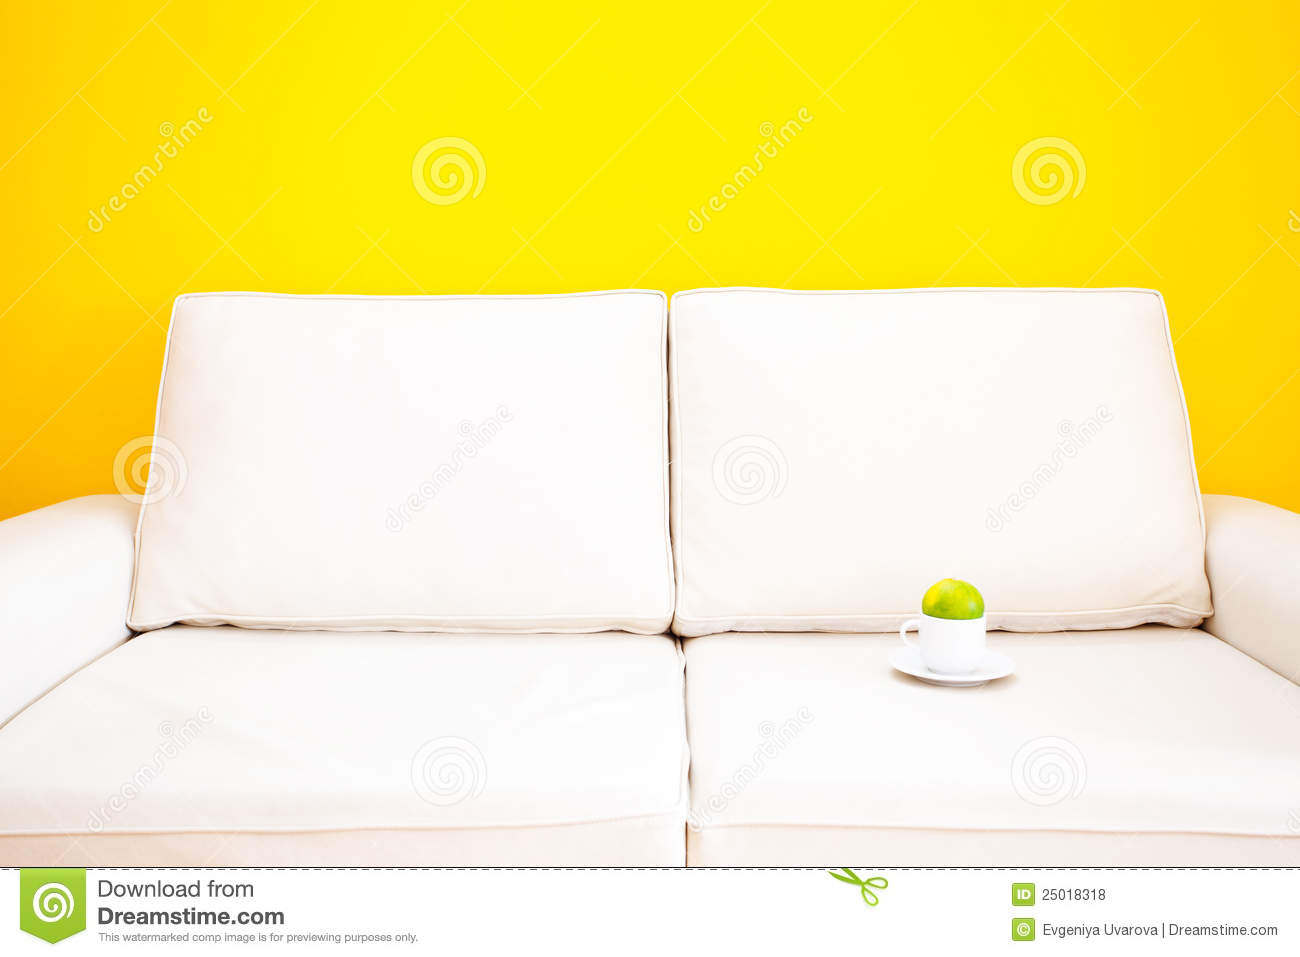 tangerine sofa leather clearance ontario white and cup with royalty free stock image